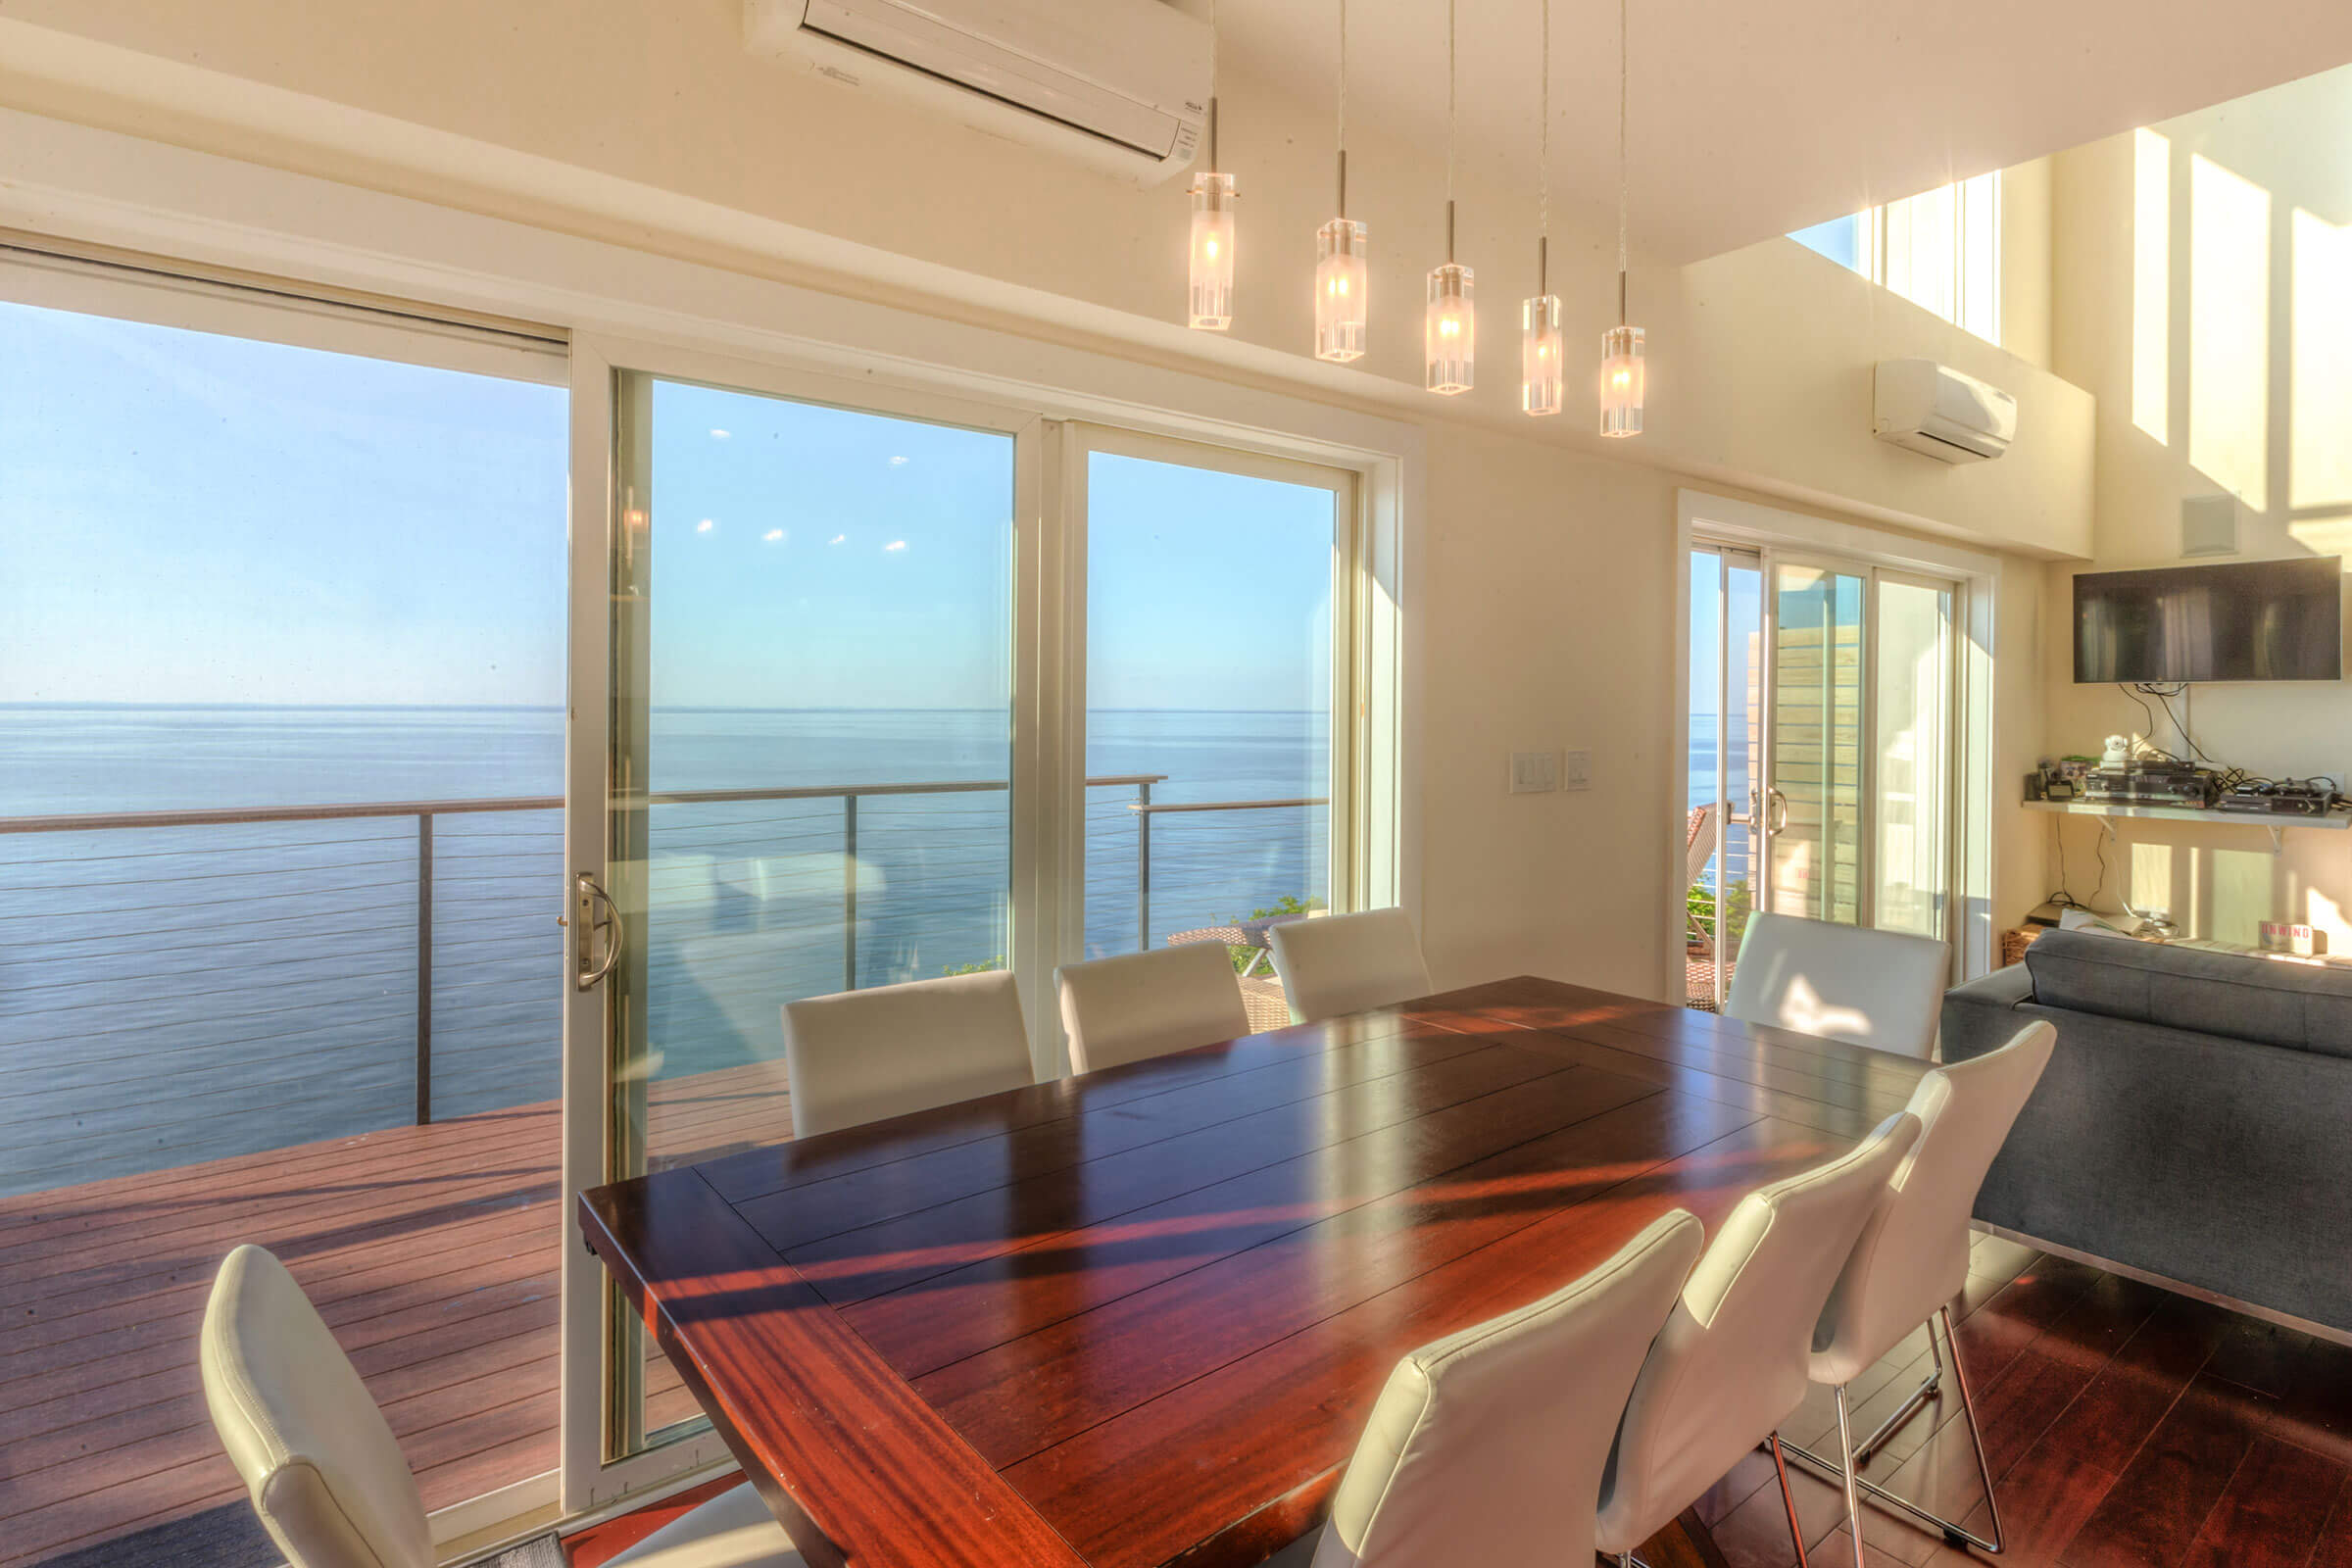 Ocean View Home With Essential Sliding Patio Door